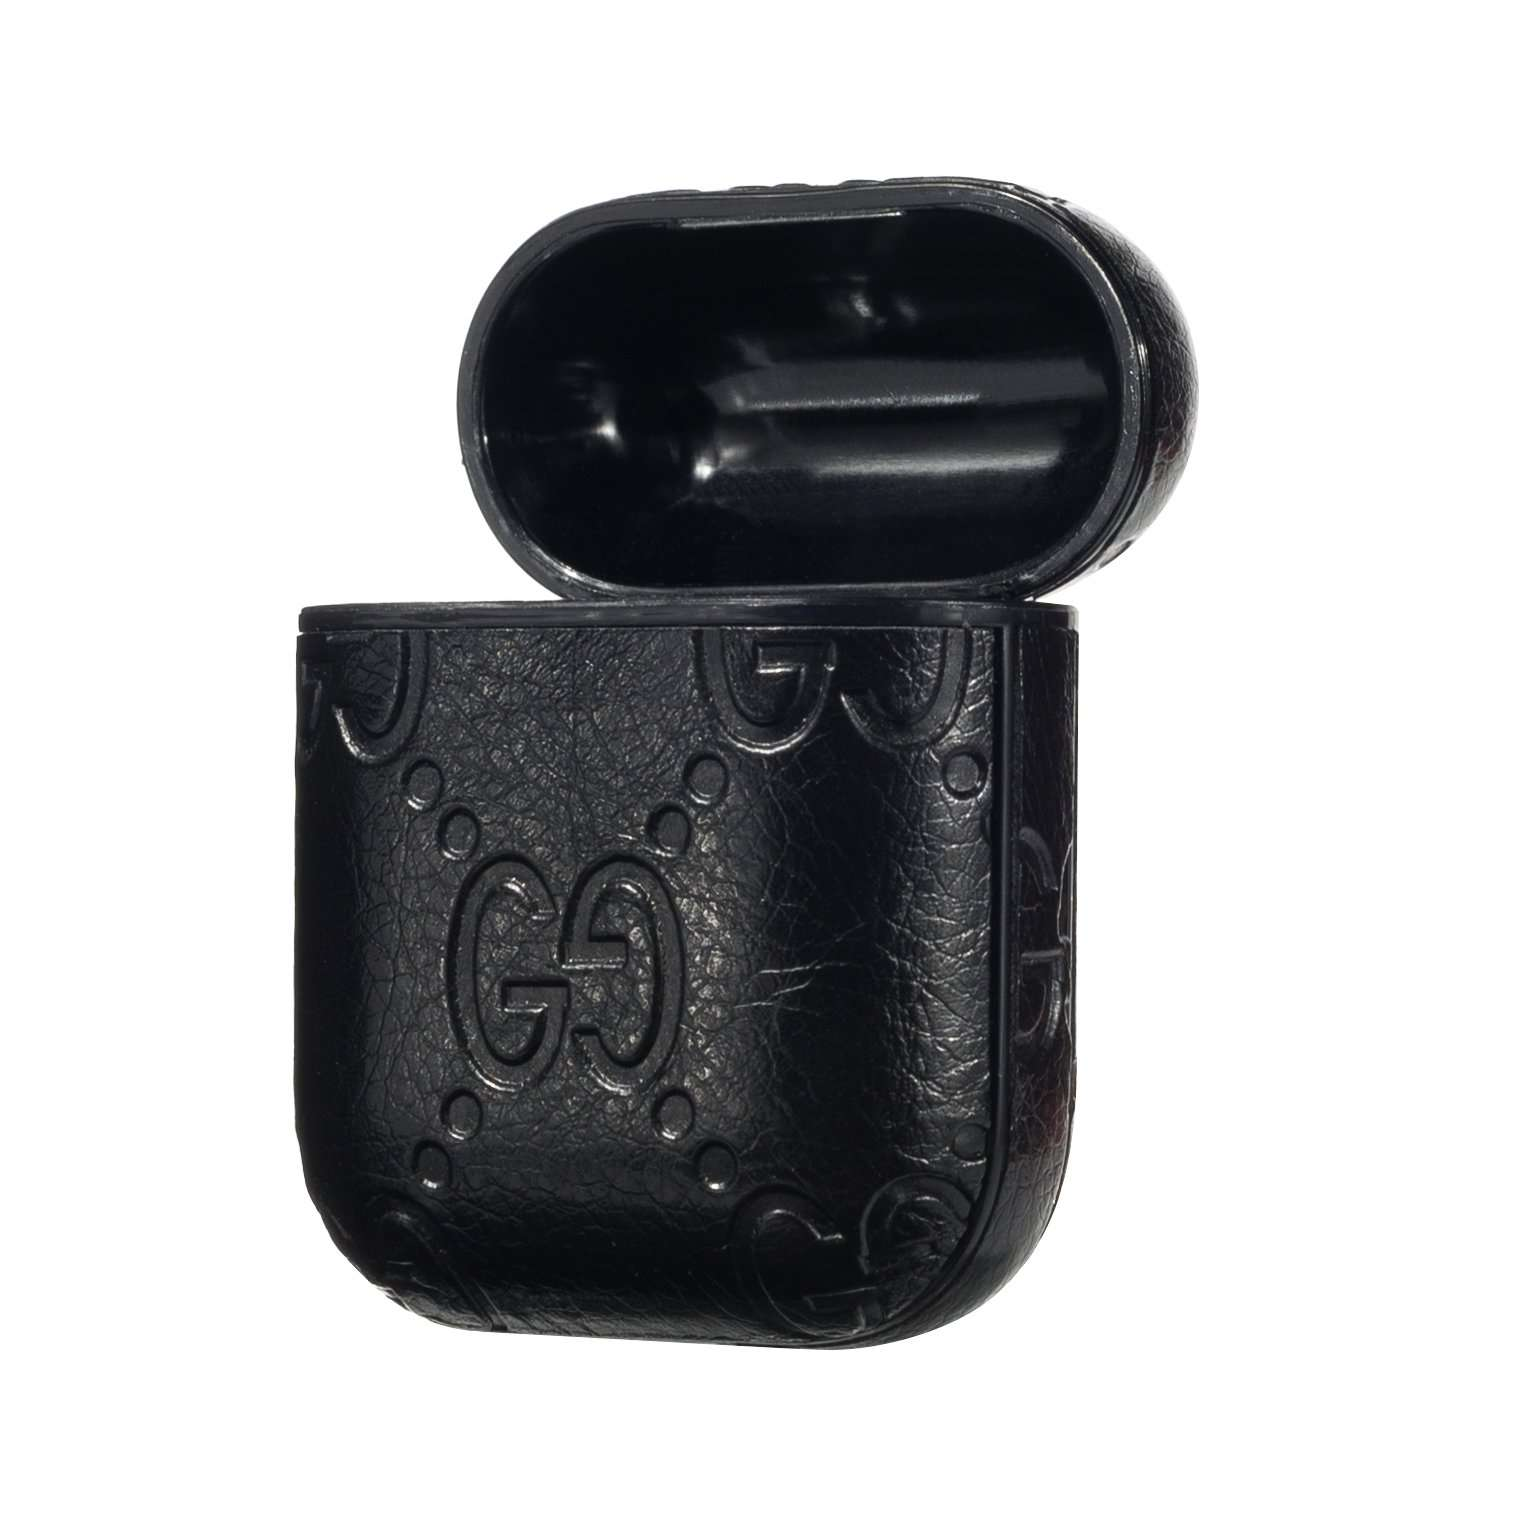 Gucci Signature AirPods Leather Protective Shockproof Case